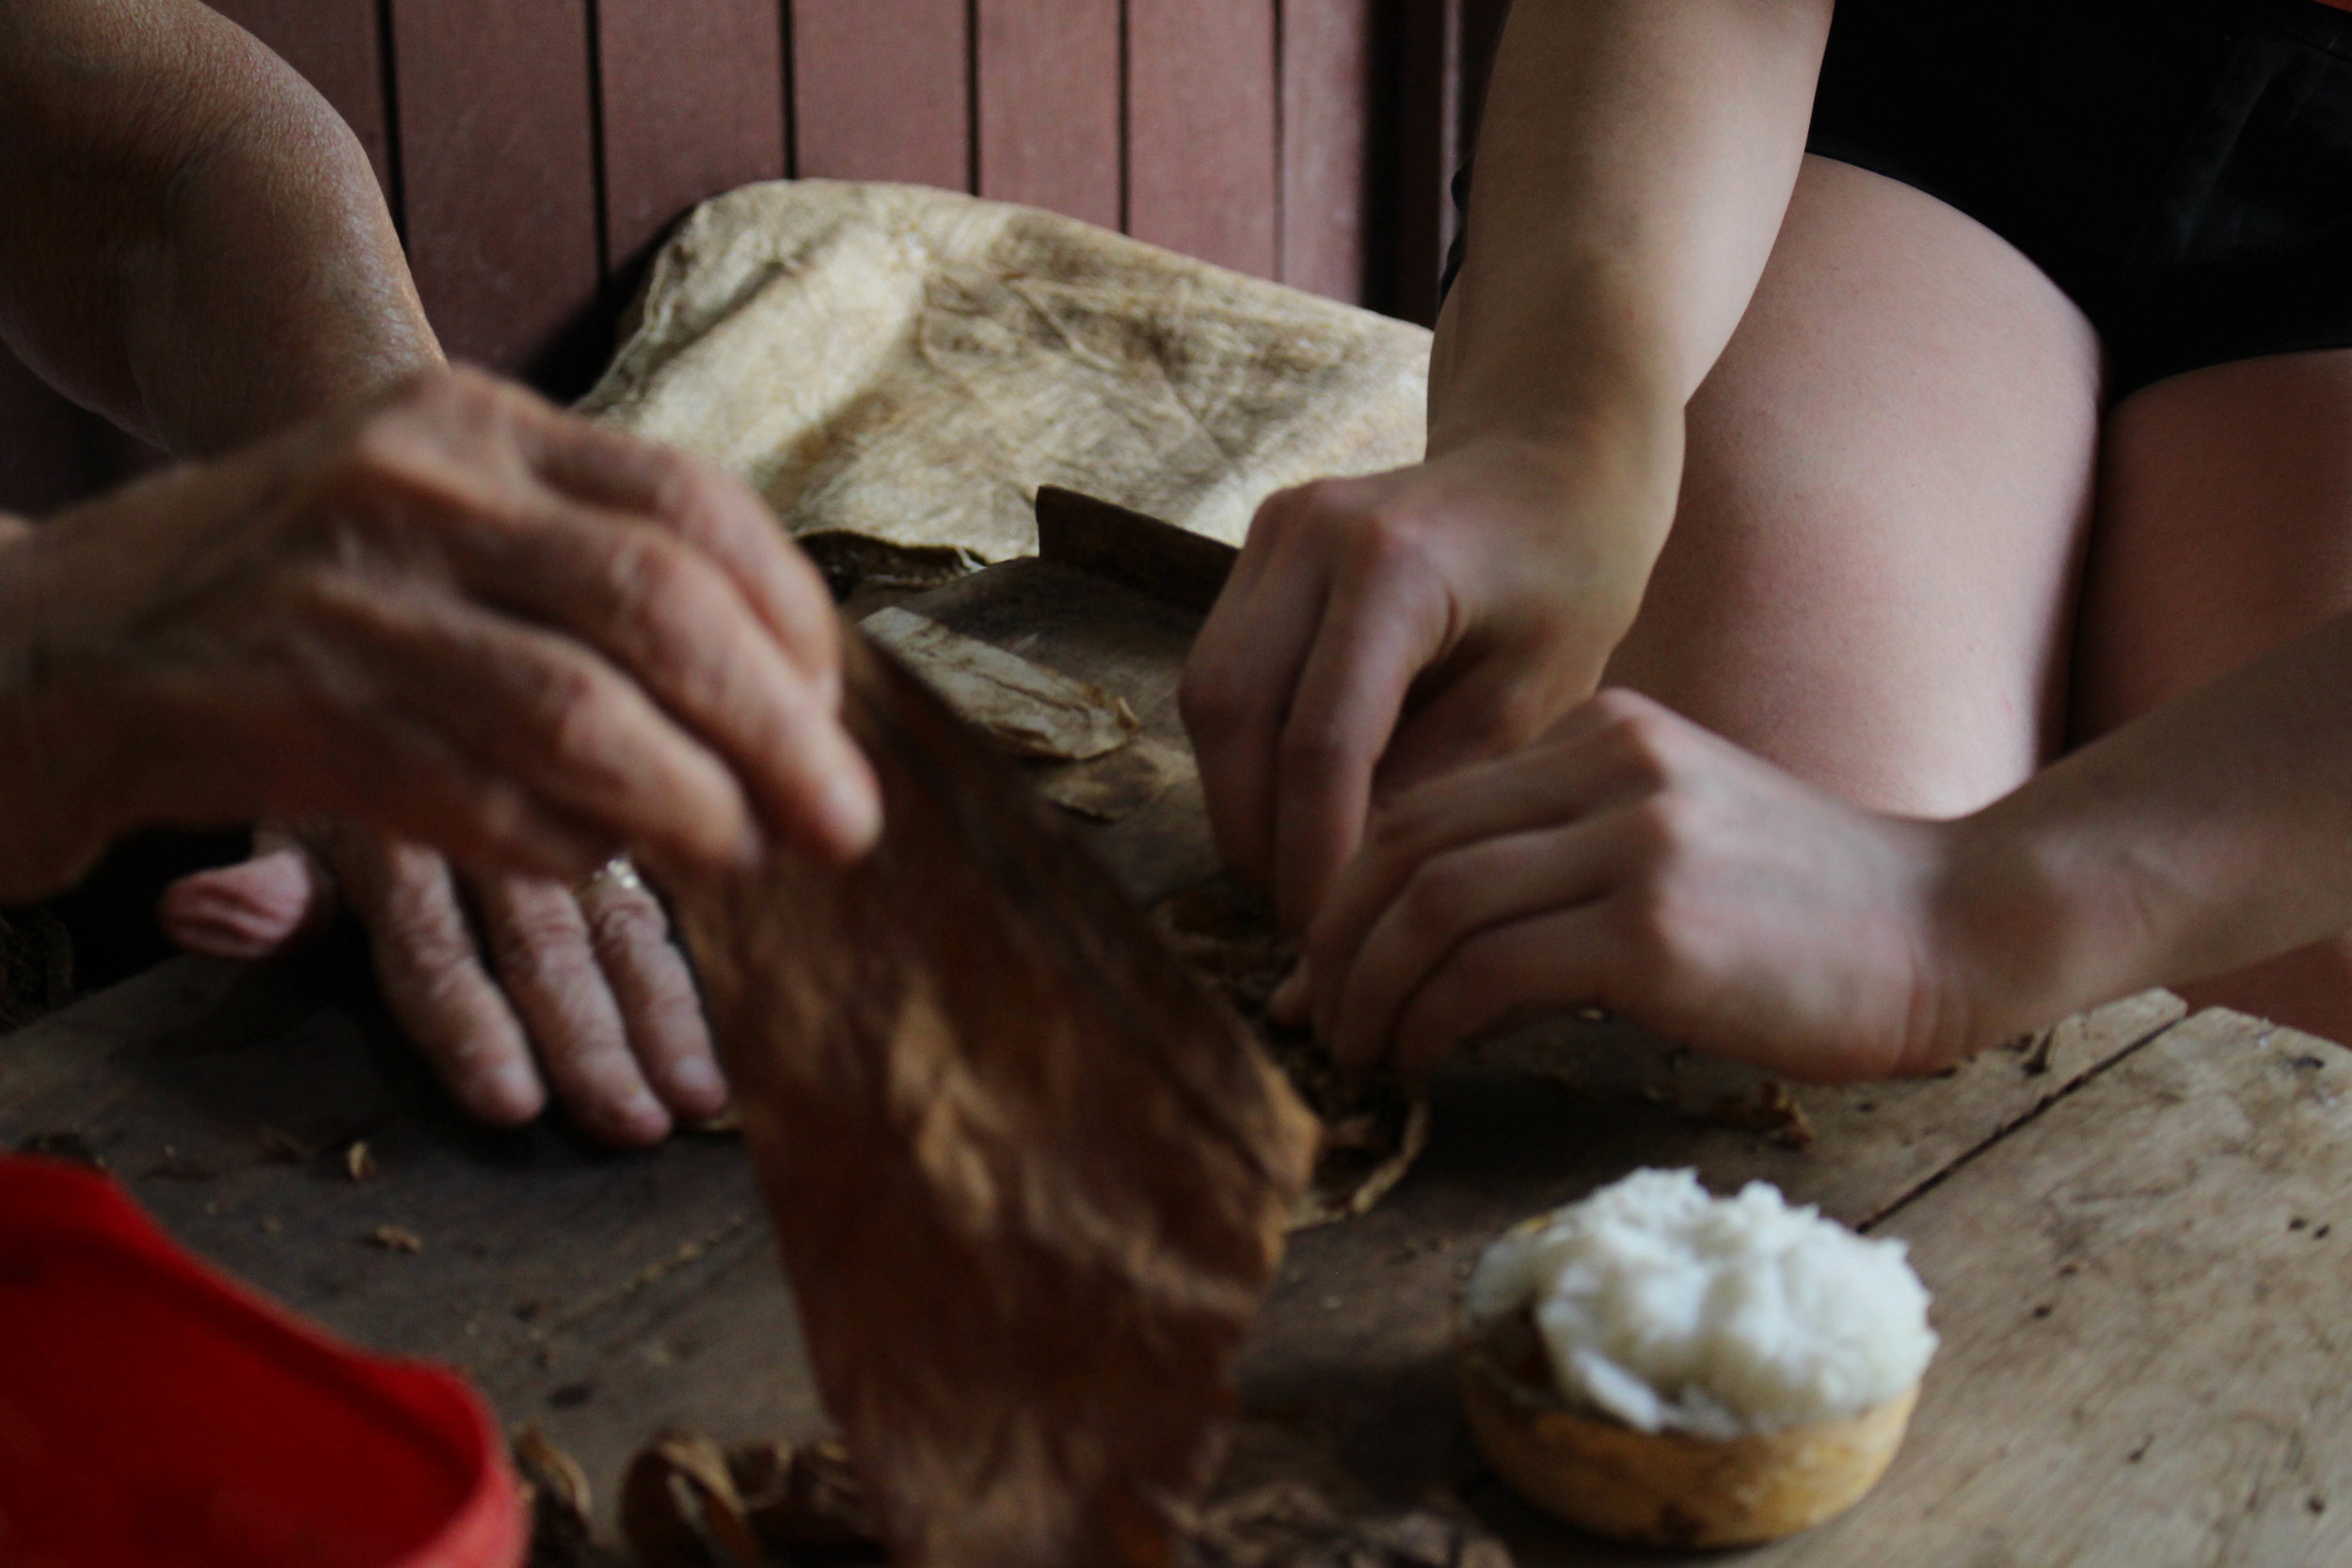 Senorita teaching me how to roll cigars, with her 70 + years of experience.